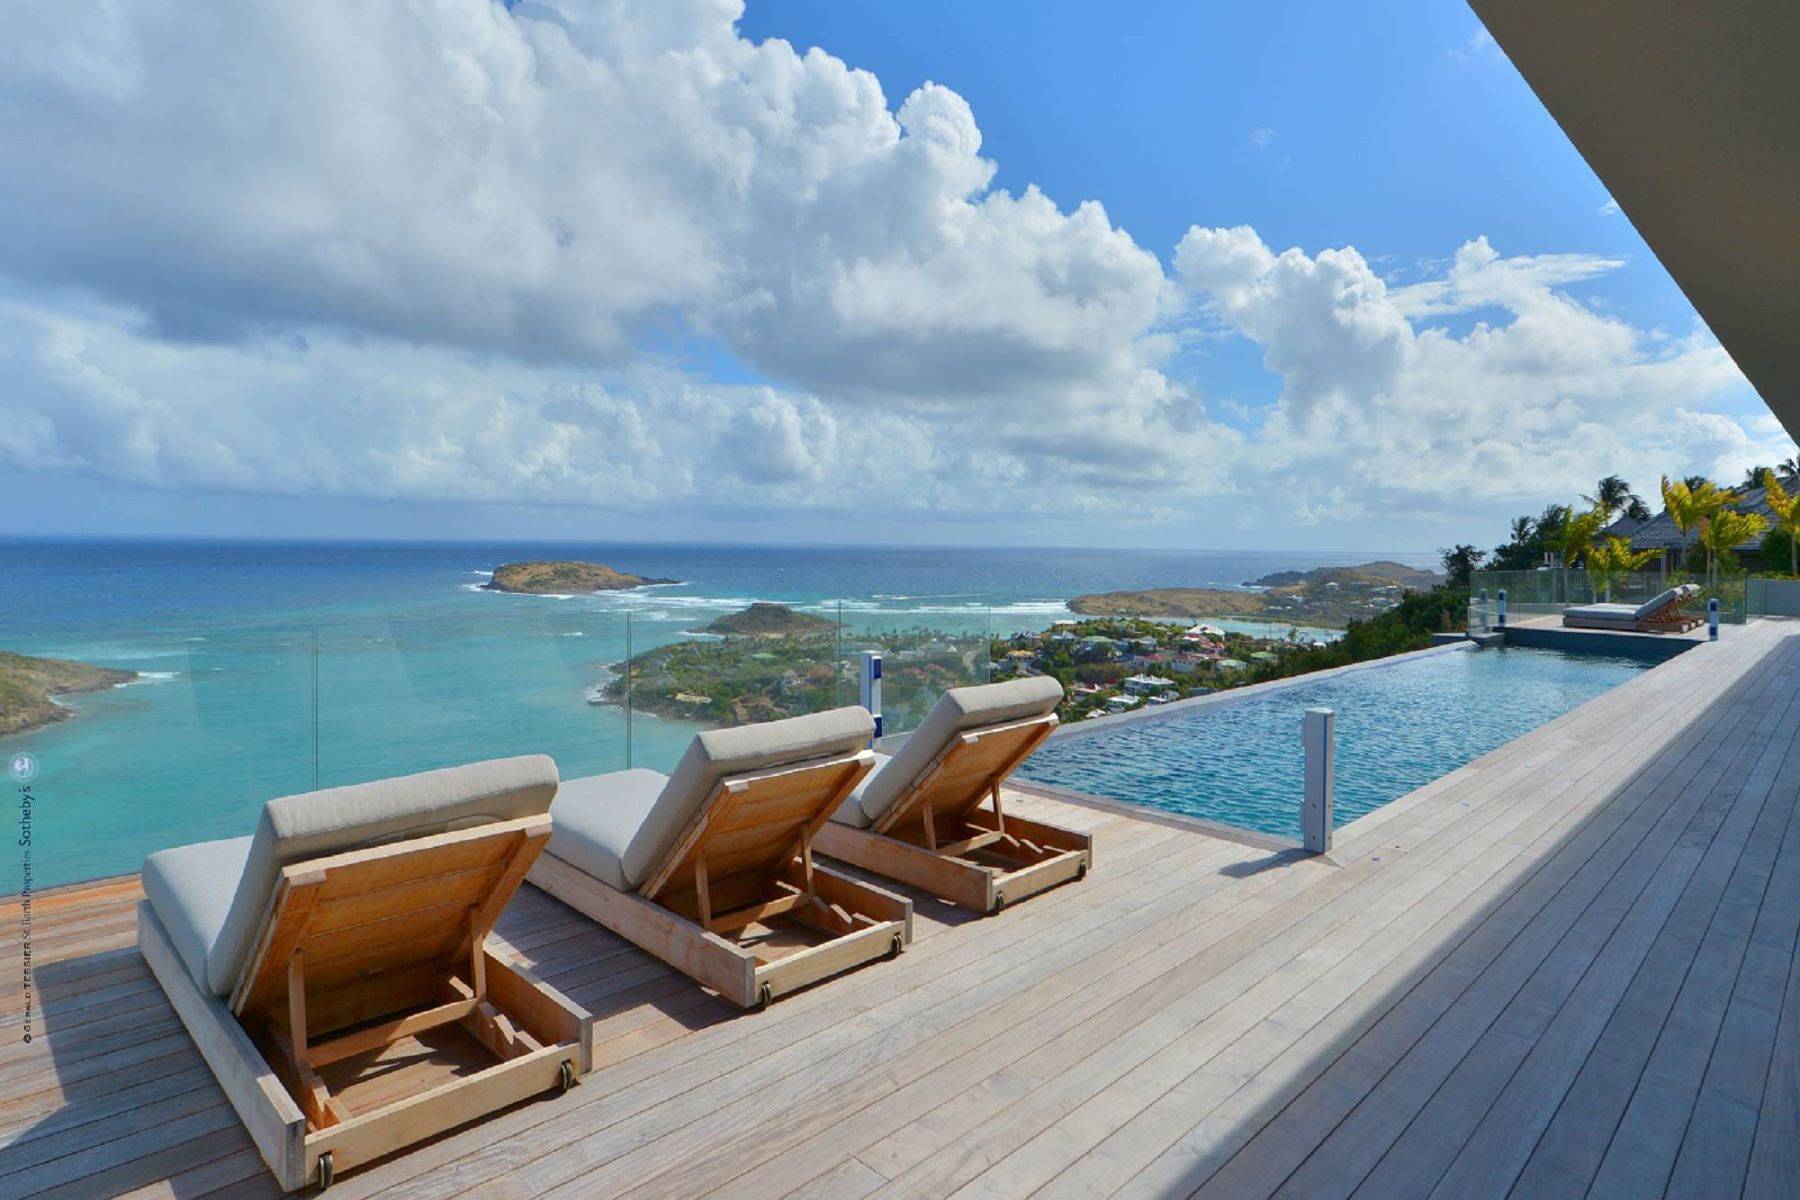 Single Family Homes for Sale at Villa Romane Other St. Barthelemy, Cities In St. Barthelemy St. Barthelemy